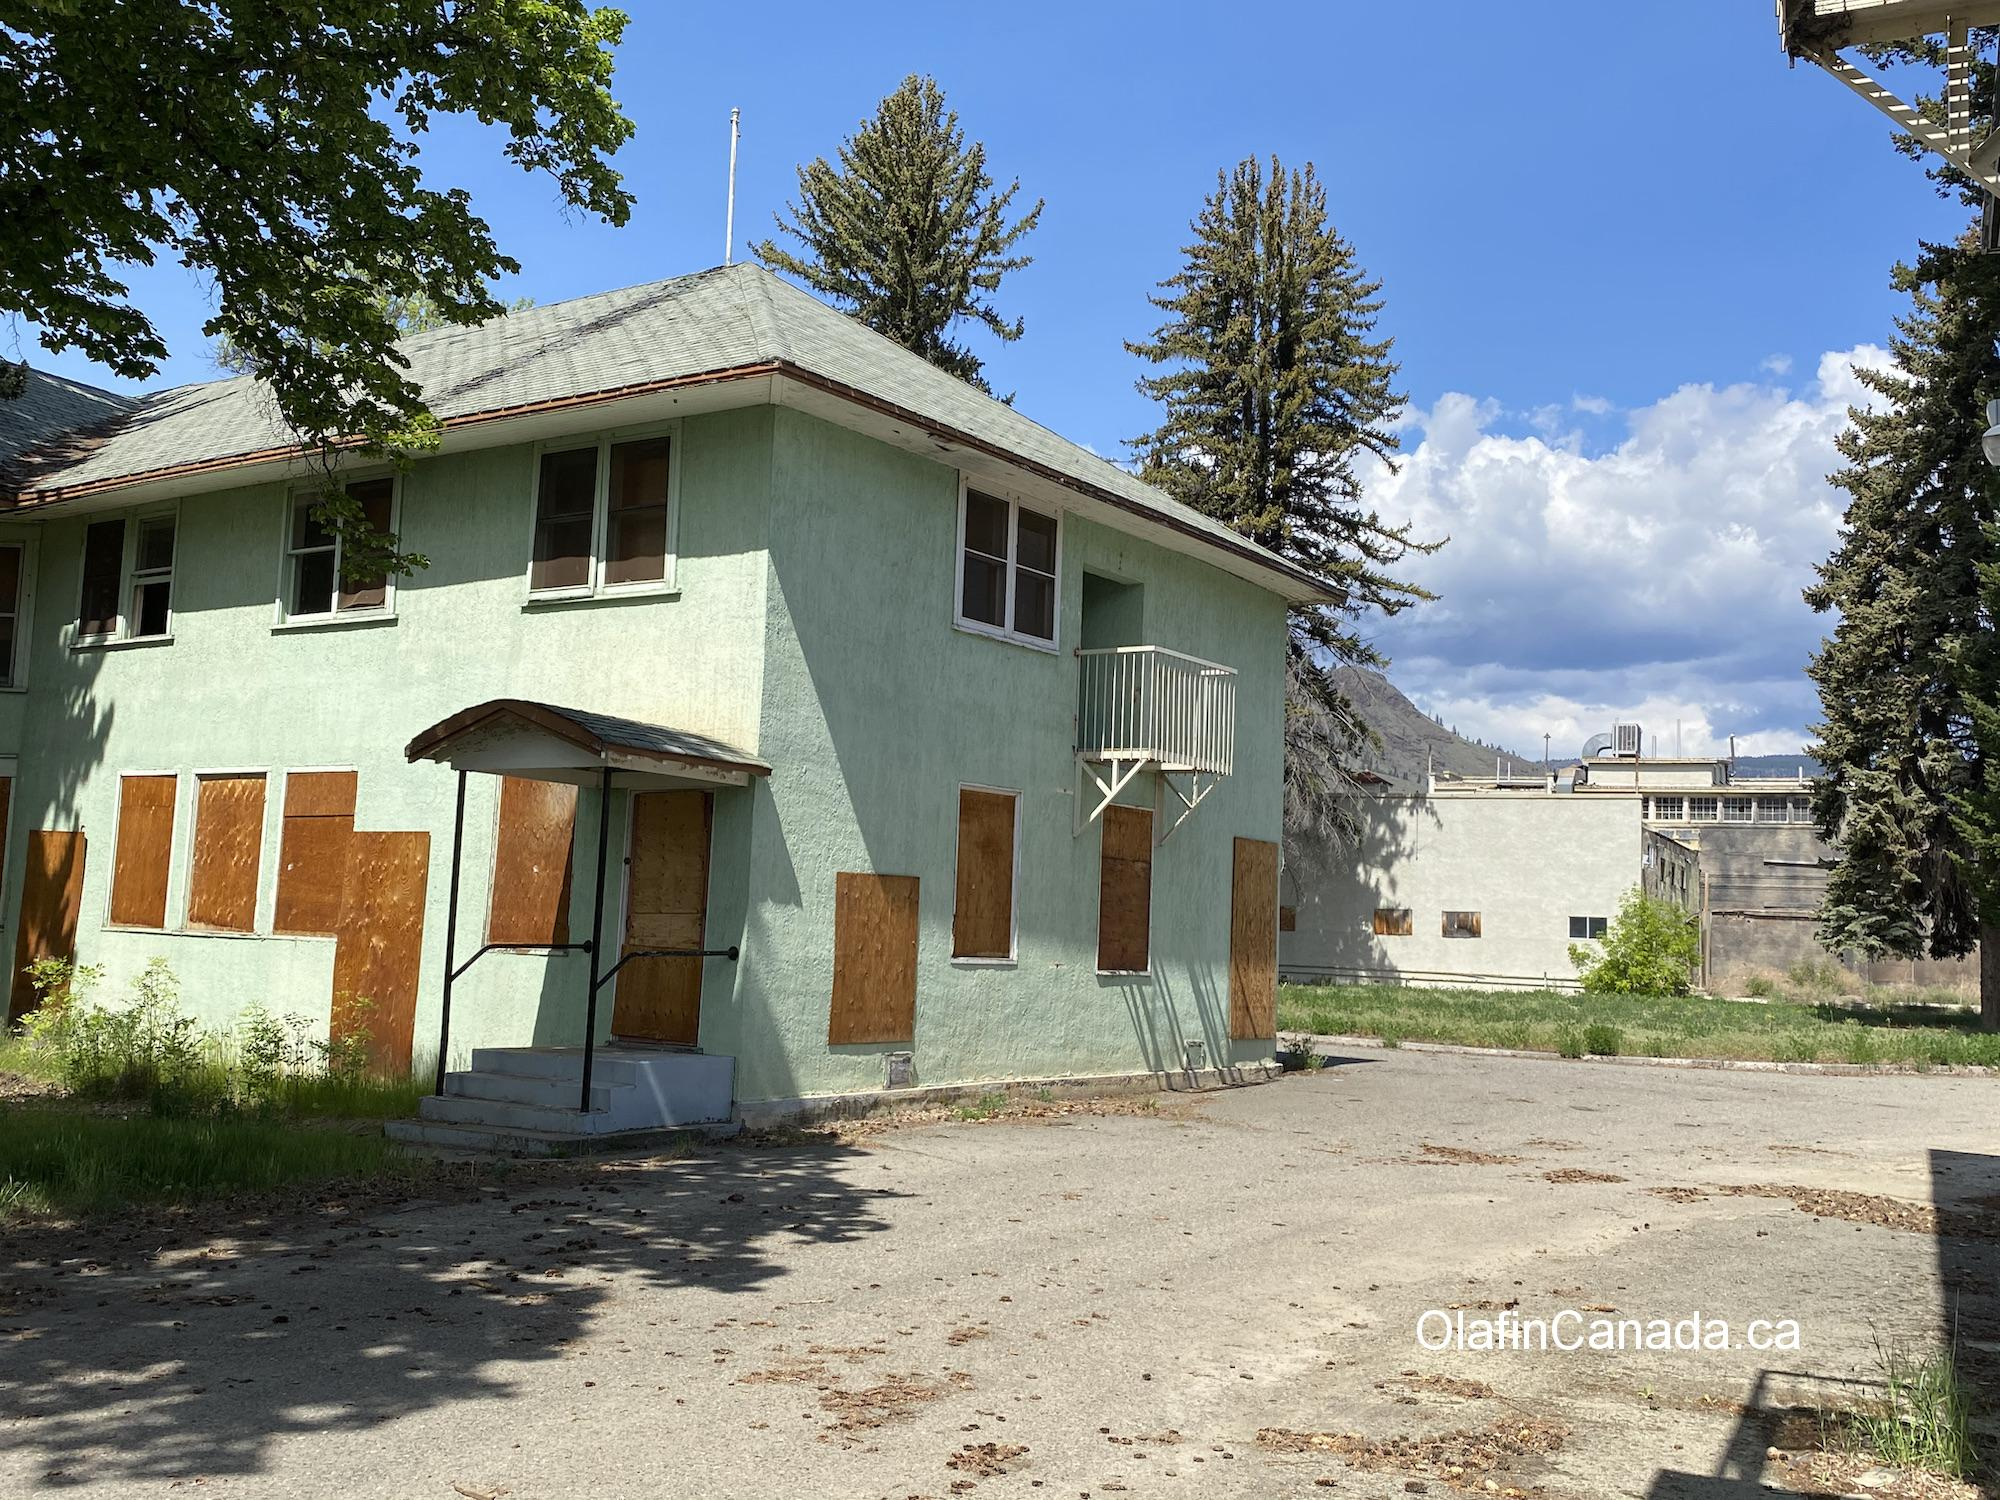 Abandoned house in Tranquille, near Kamloops. #olafincanada #britishcolumbia #discoverbc #abandonedbc #tranquille